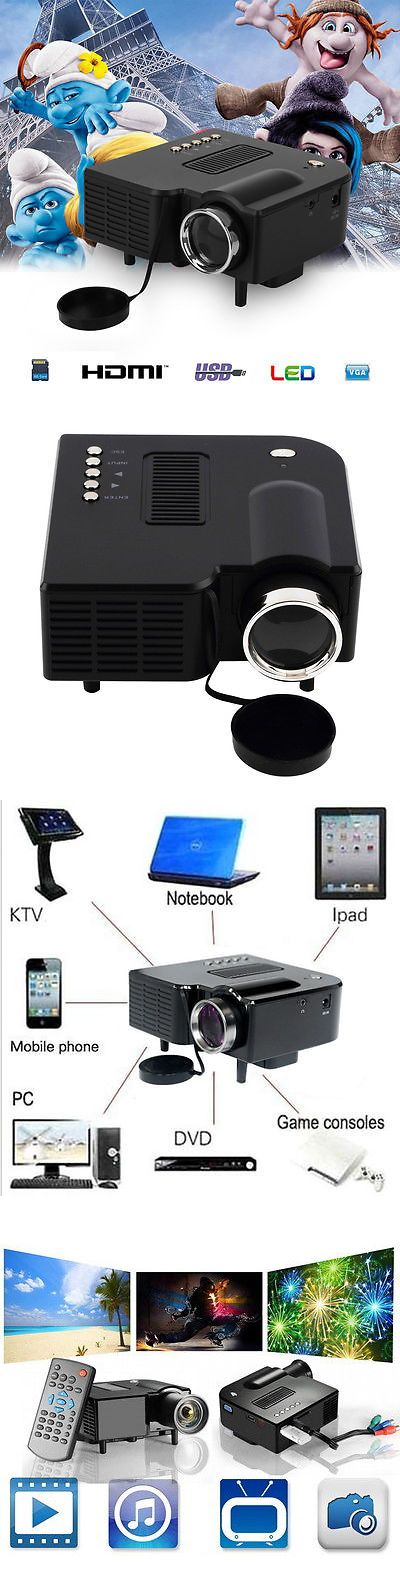 Home Theater Projectors: Mini Portable Hd Led Projector Home Cinema Theater Pc Laptop Vga Usb Sd Av Hdmiand -> BUY IT NOW ONLY: $34.85 on eBay!